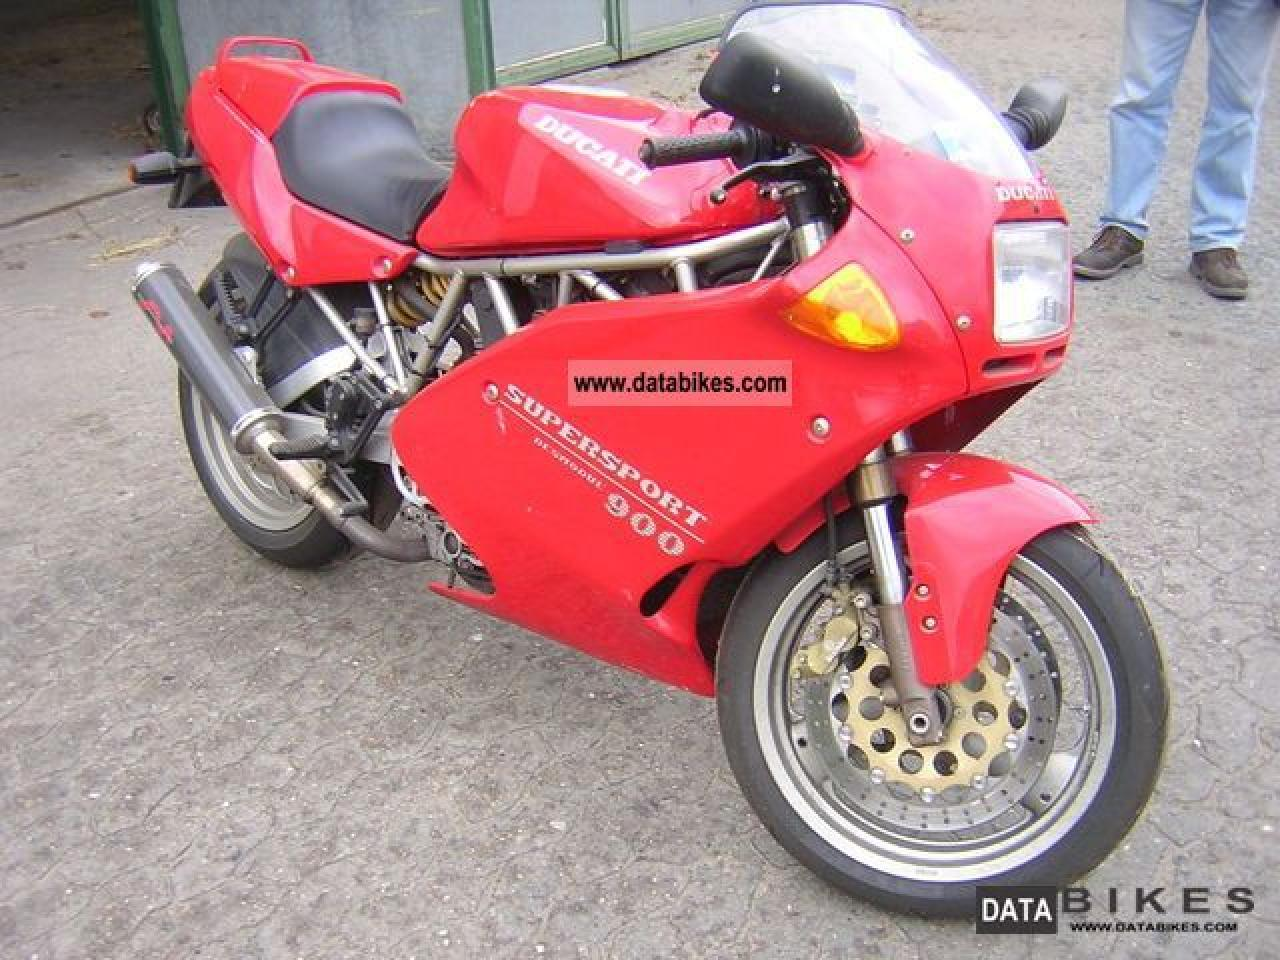 Ducati 900 SS Carenata 2001 wallpapers #11108